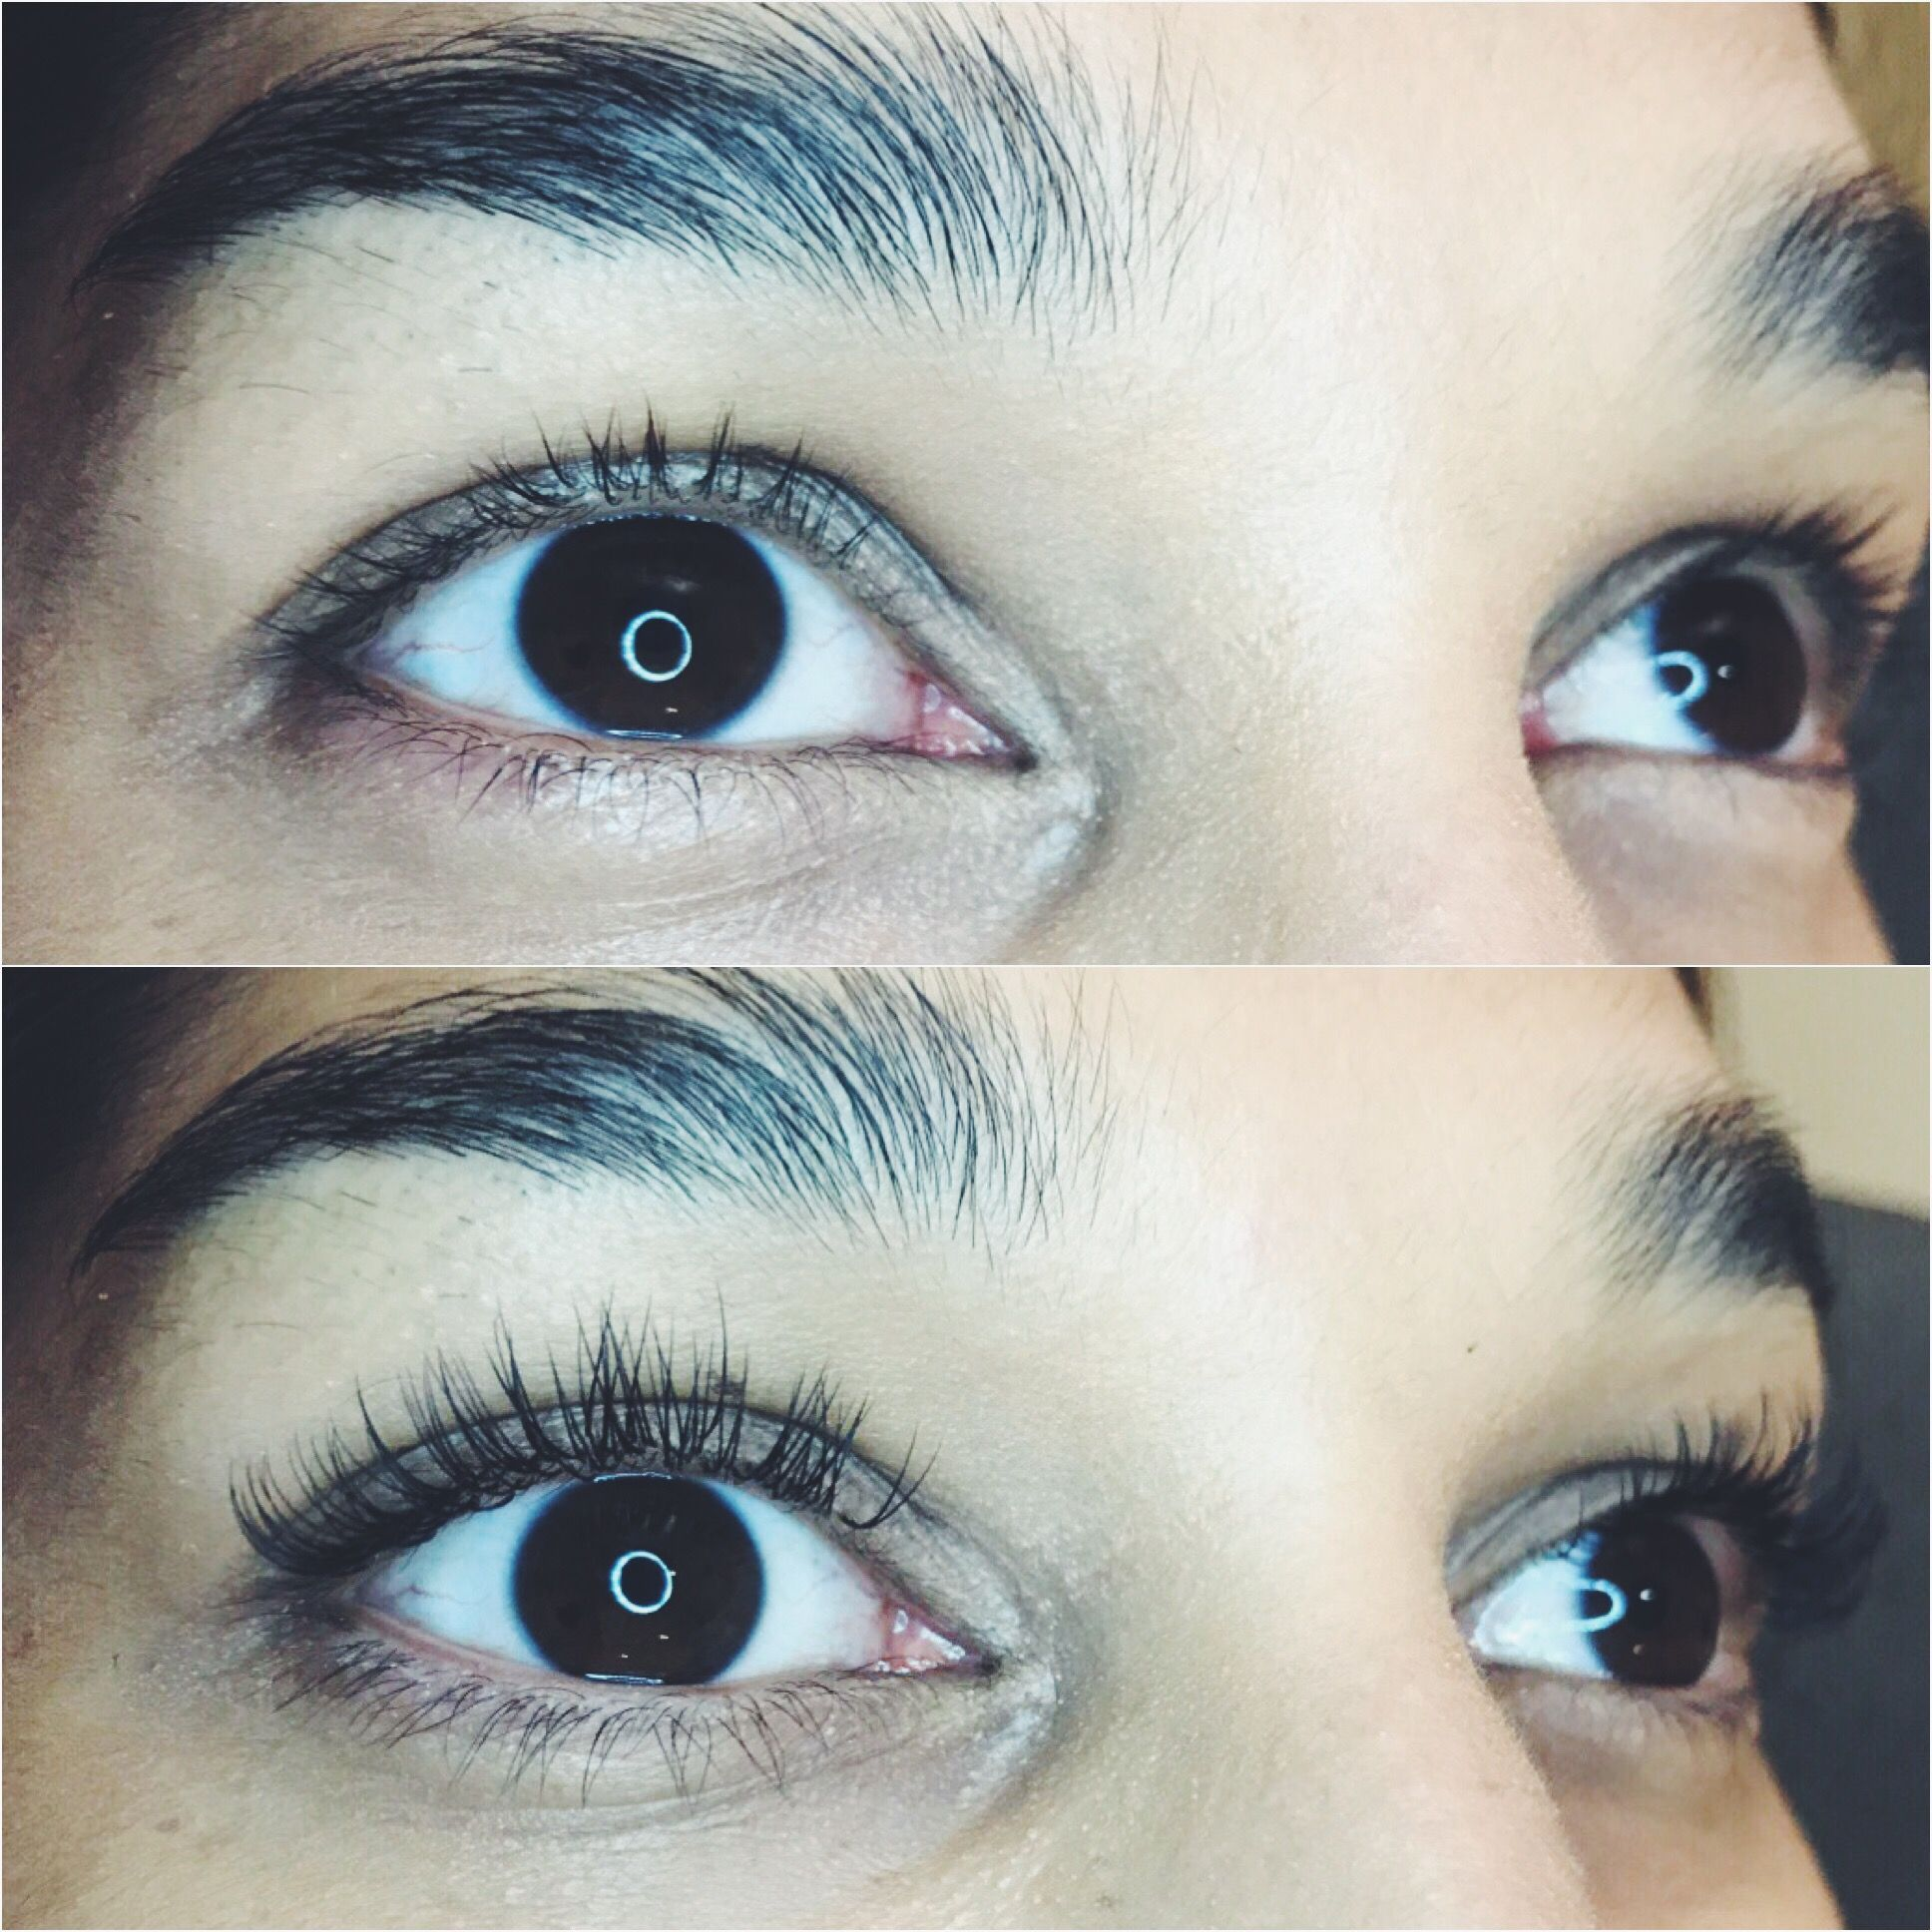 Eyelash extensions all your questions answered lows to